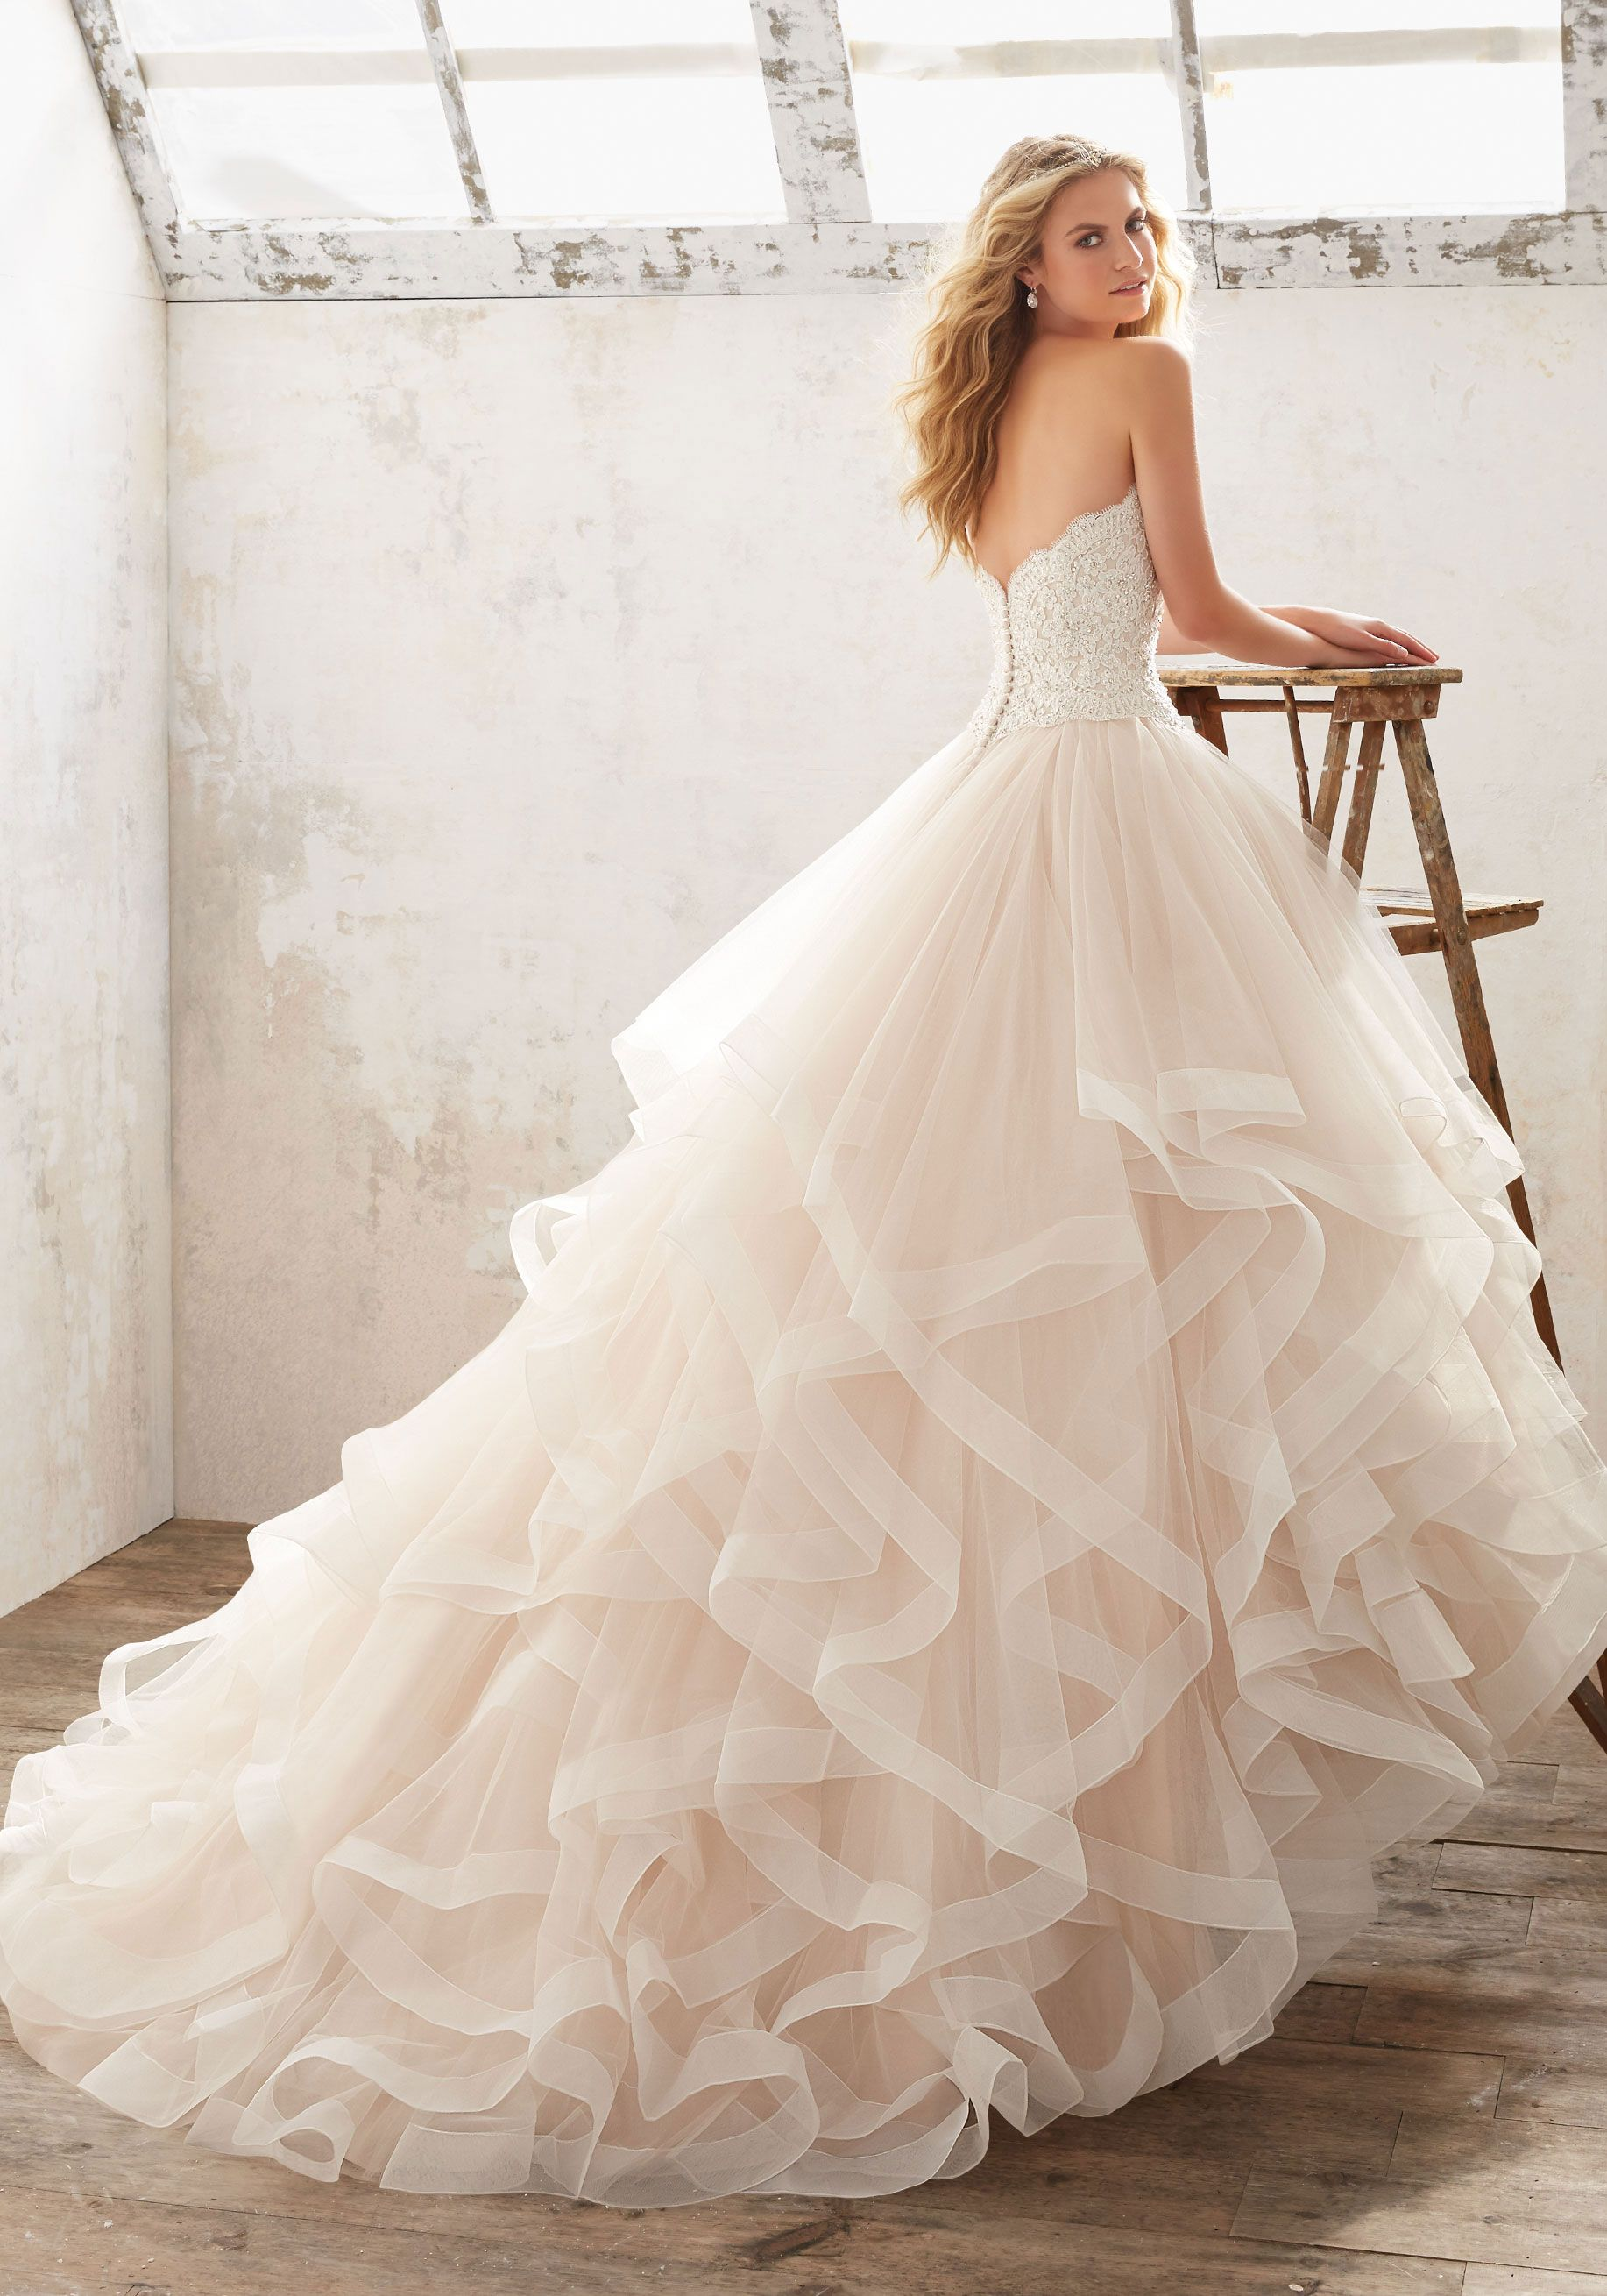 White lace texture bridal layered ruffled - Morilee By Madeline Gardner Marcia 8116 Soft And Ethereal Ruffled Bridal Ballgown Features A Crystal Beaded Alen On Lace Bodice And Horsehair Trimmed